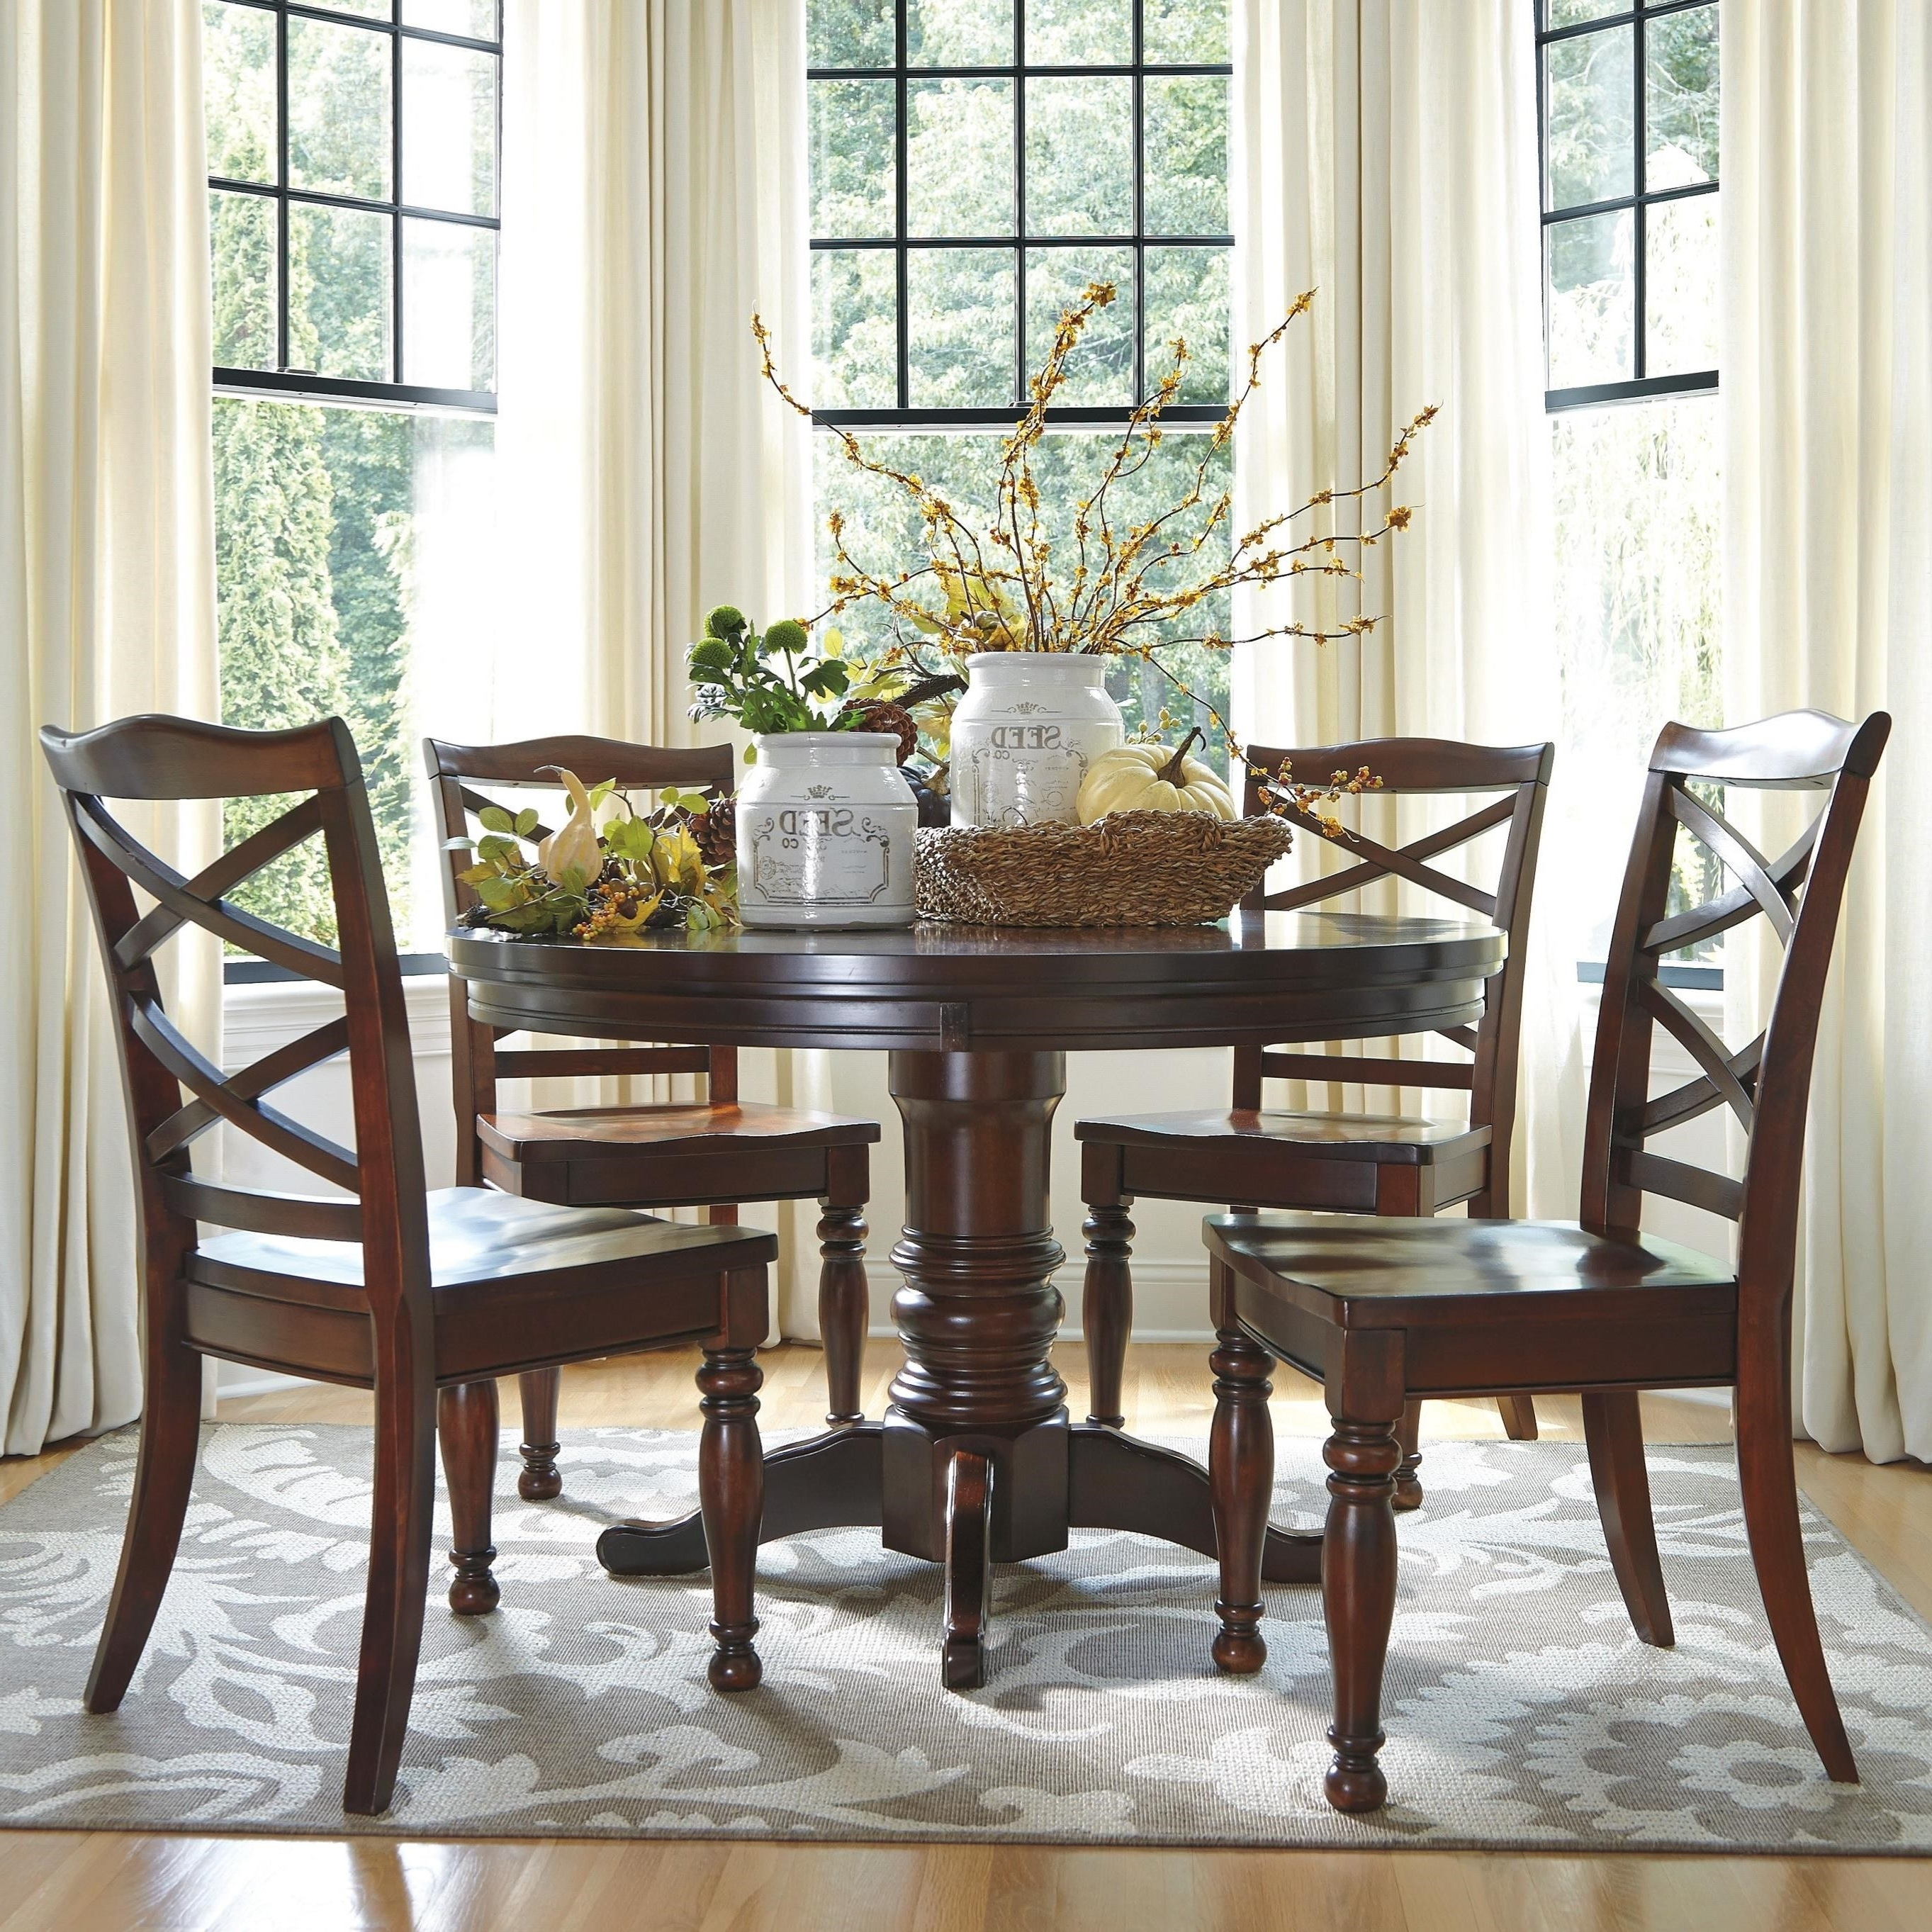 Dining Set Round Table – Castrophotos Regarding Popular Macie 5 Piece Round Dining Sets (View 10 of 25)